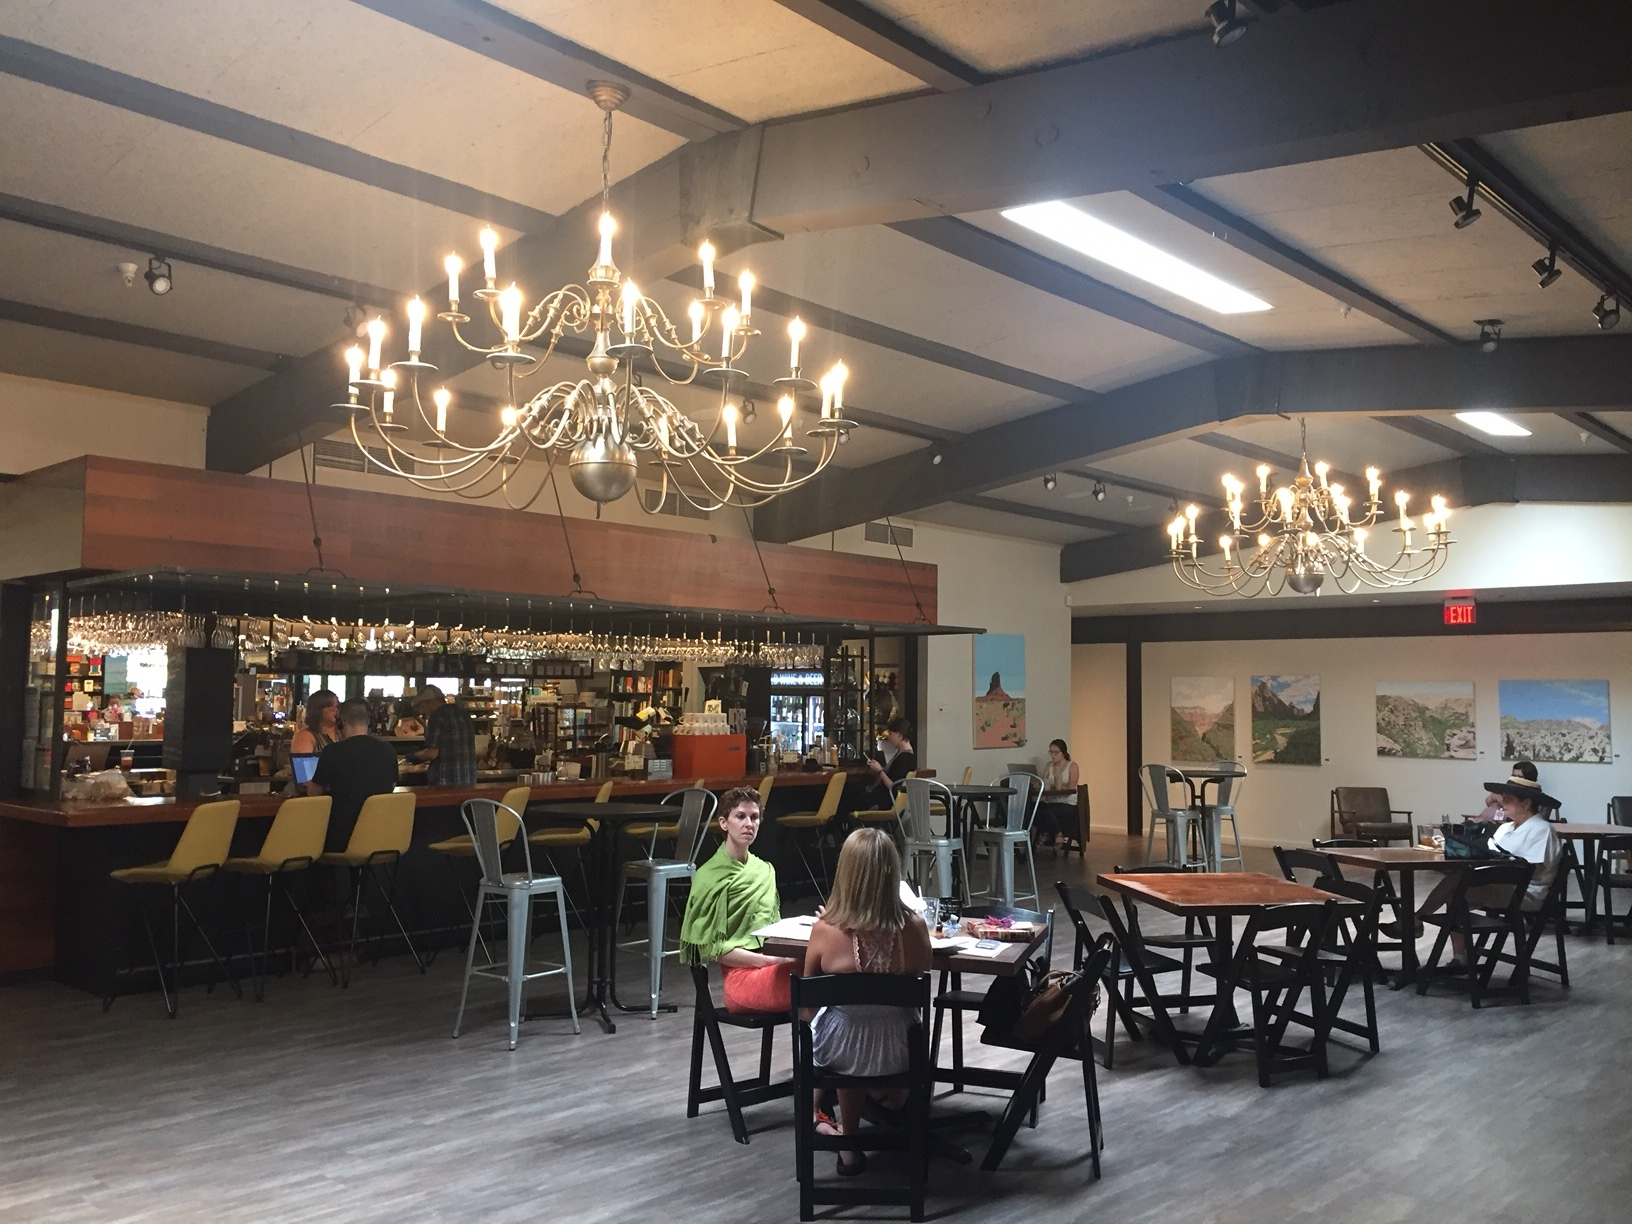 The Commons can host up to 180 guests for a mixer event.